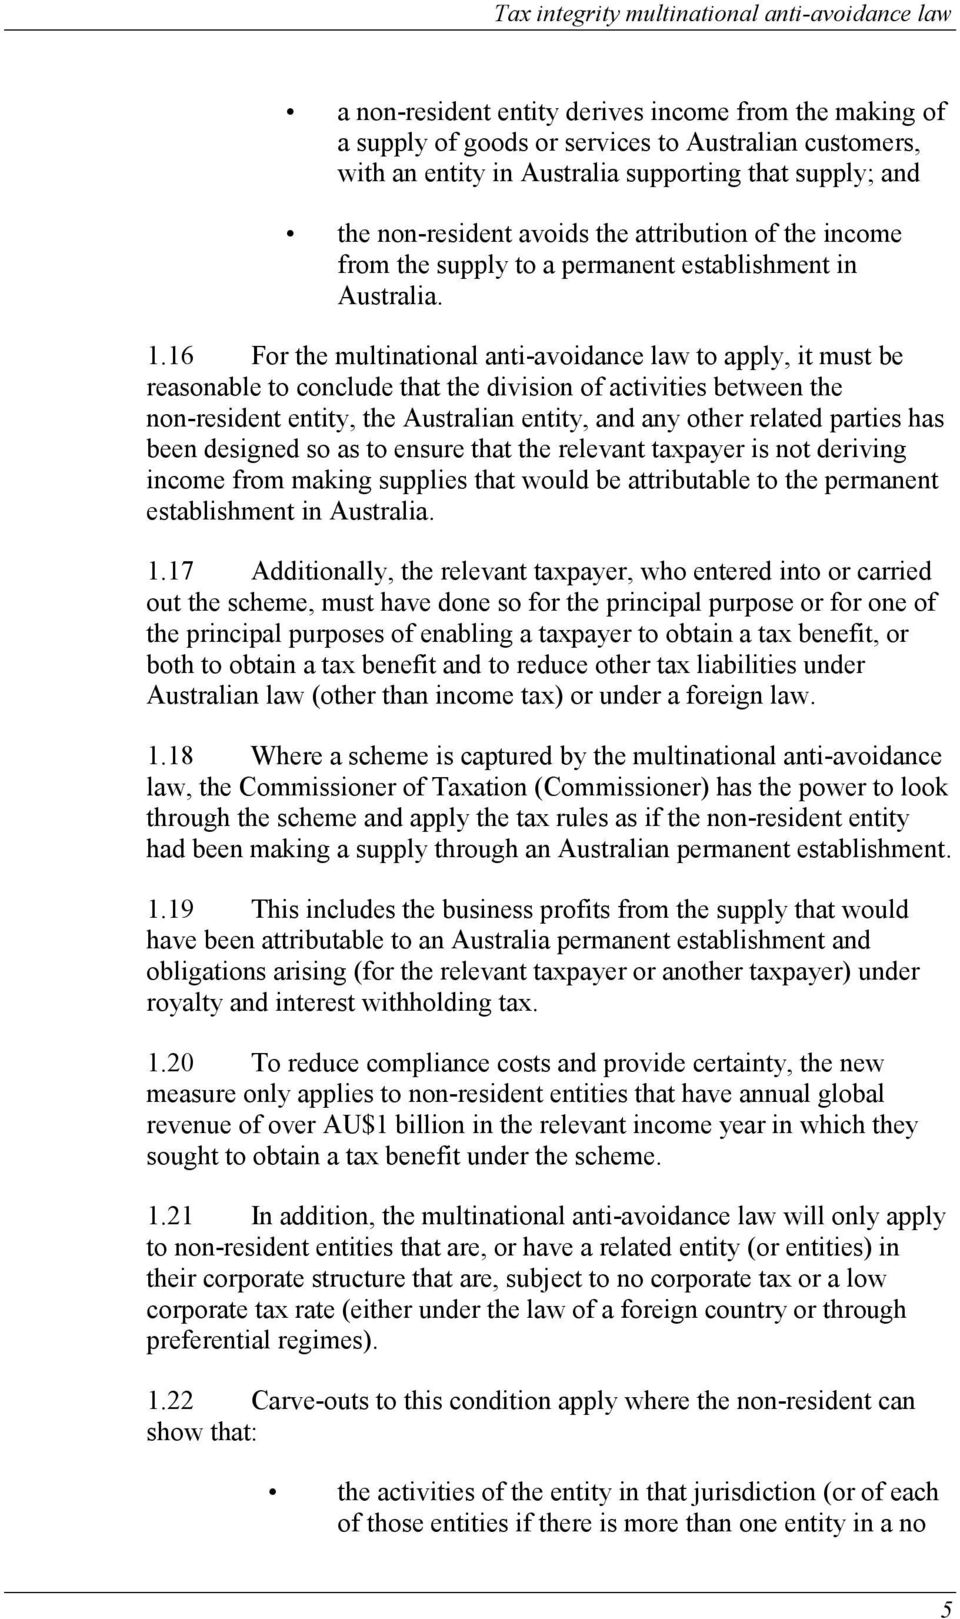 16 For the multinational anti-avoidance law to apply, it must be reasonable to conclude that the division of activities between the non-resident entity, the Australian entity, and any other related